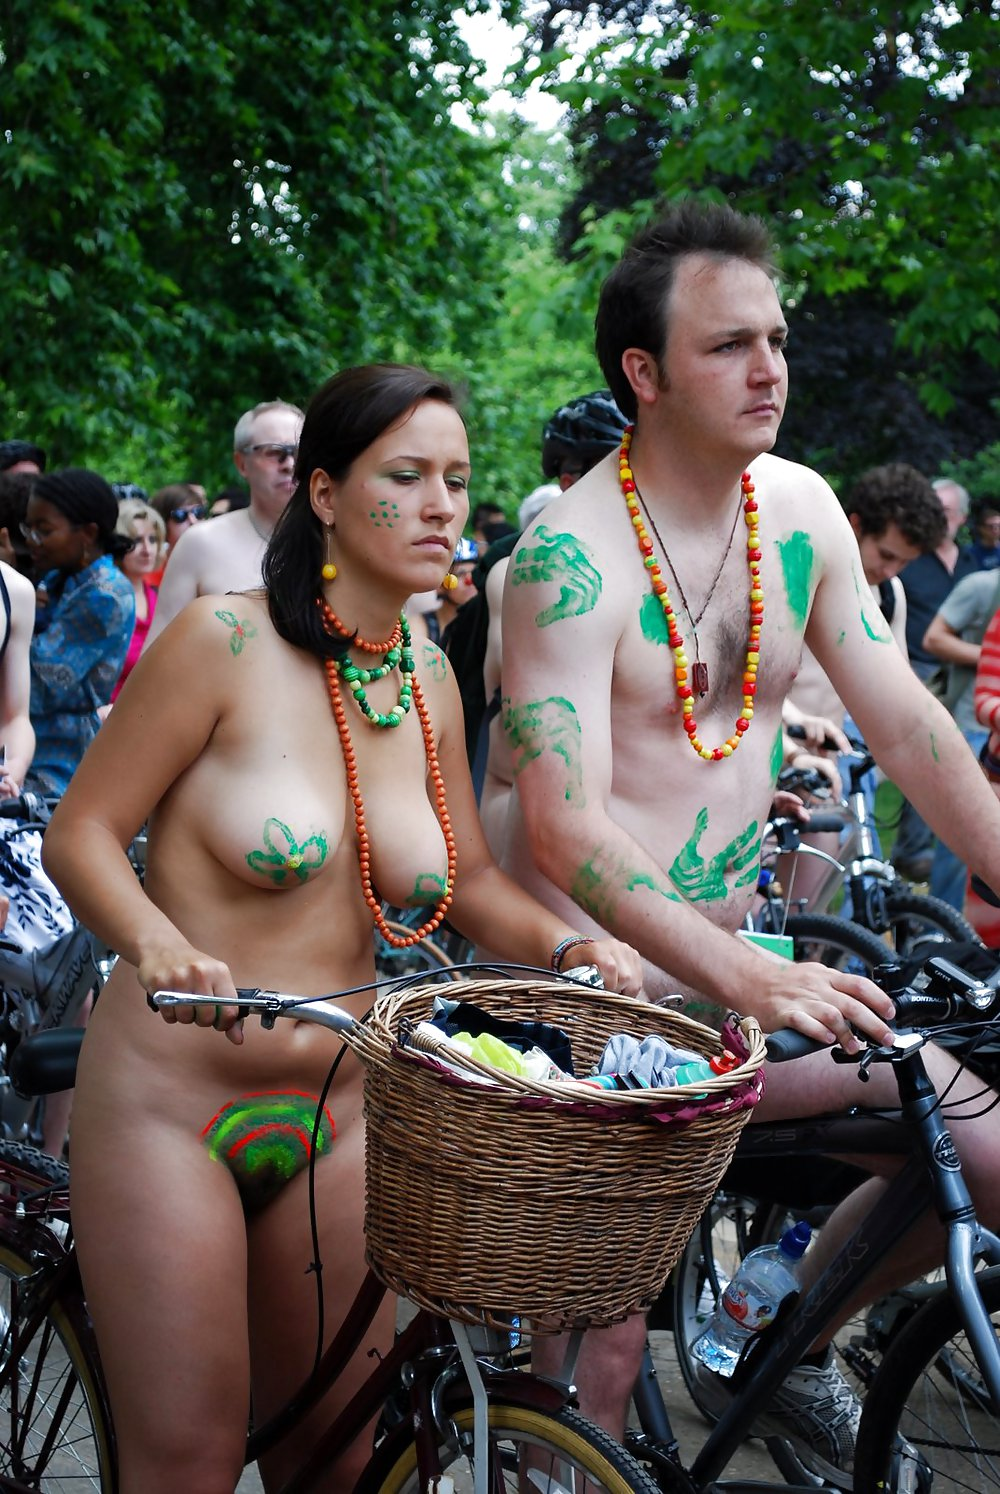 naked-bike-ride-gallery